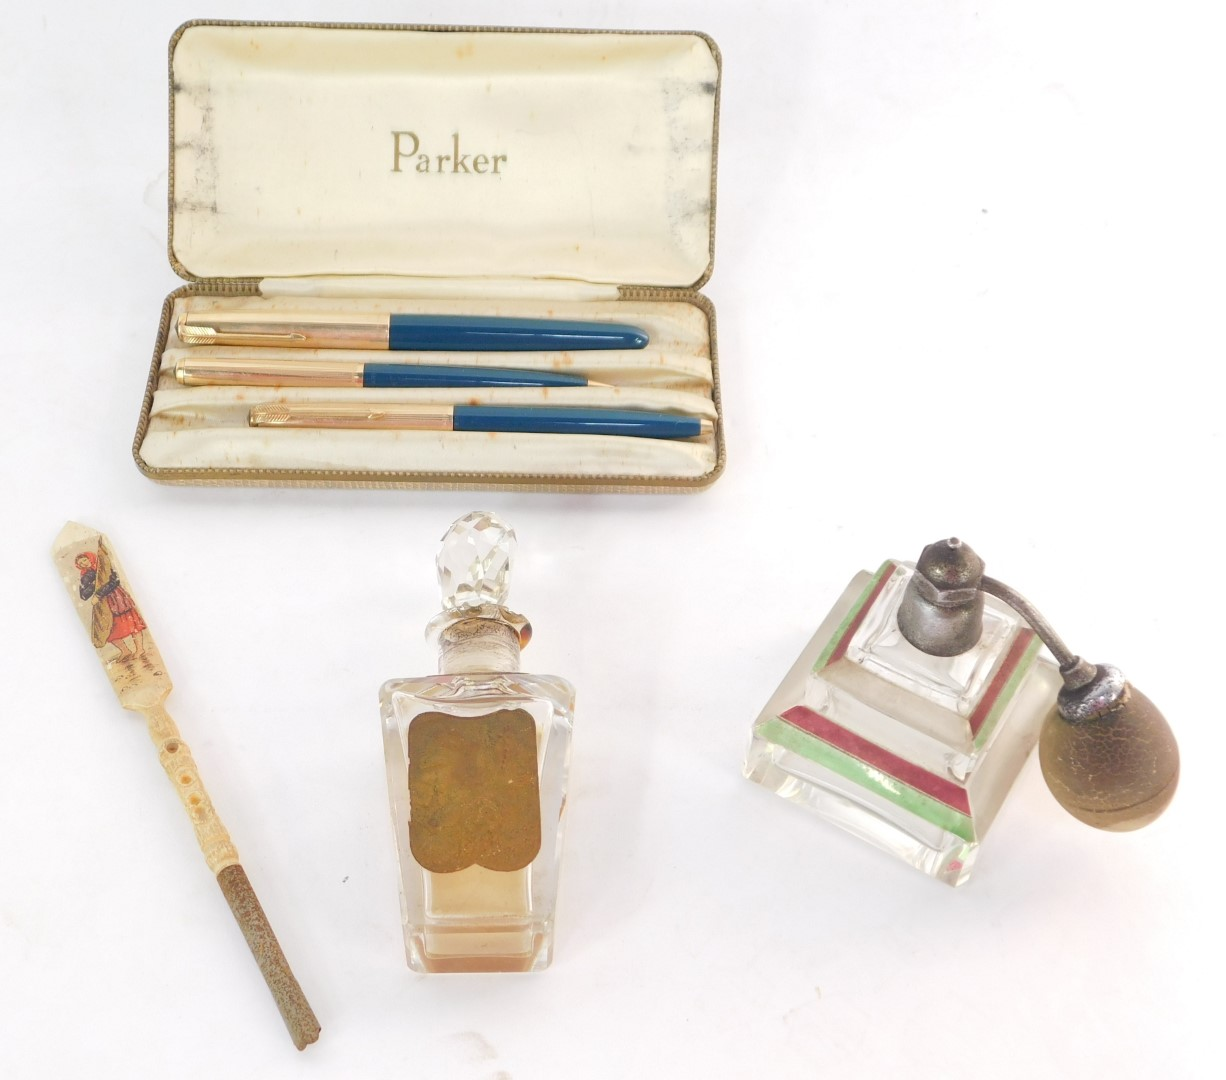 A Parker three piece writing set, in green and 12ct rolled gold, comprising a 51 fountain pen, a